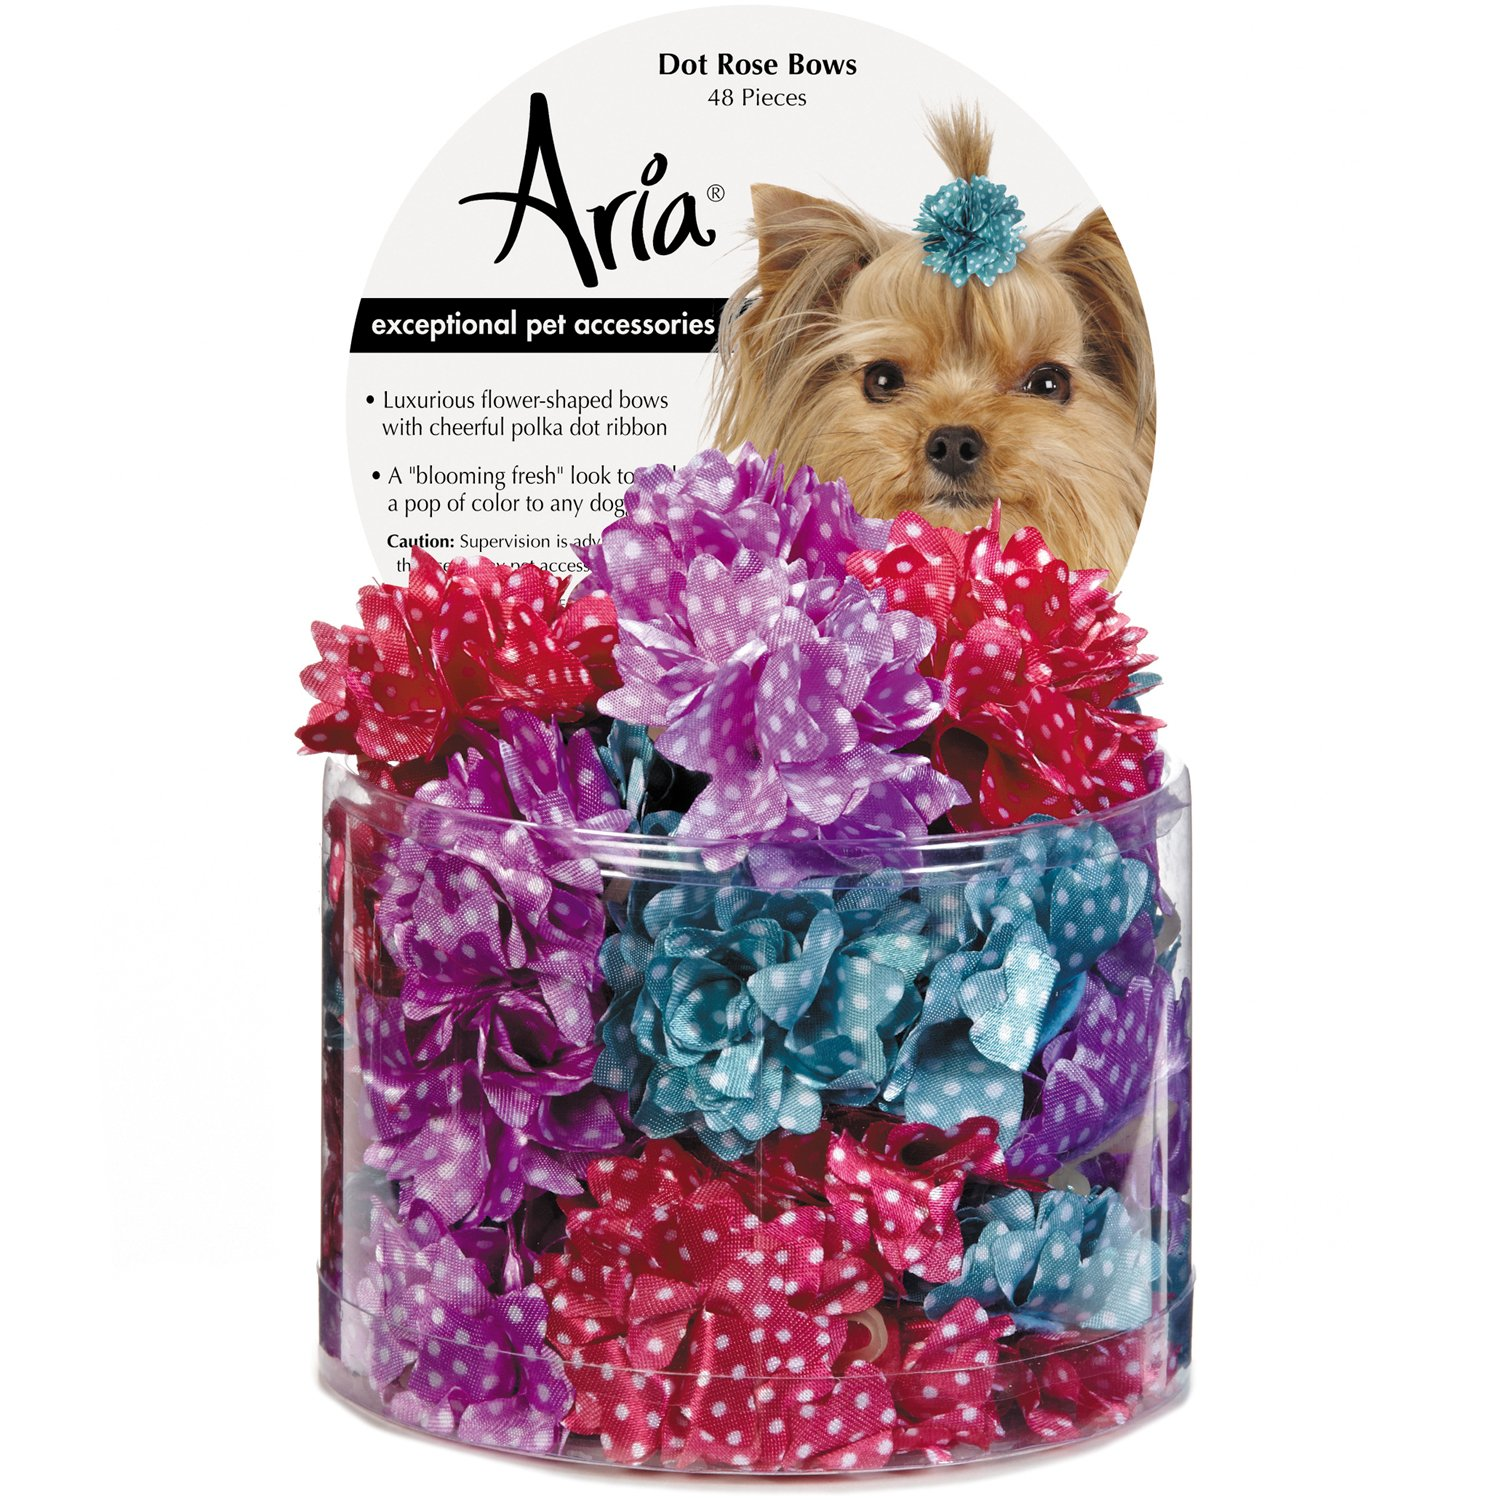 Aria Dot pink 48 Piece Bows for Dogs